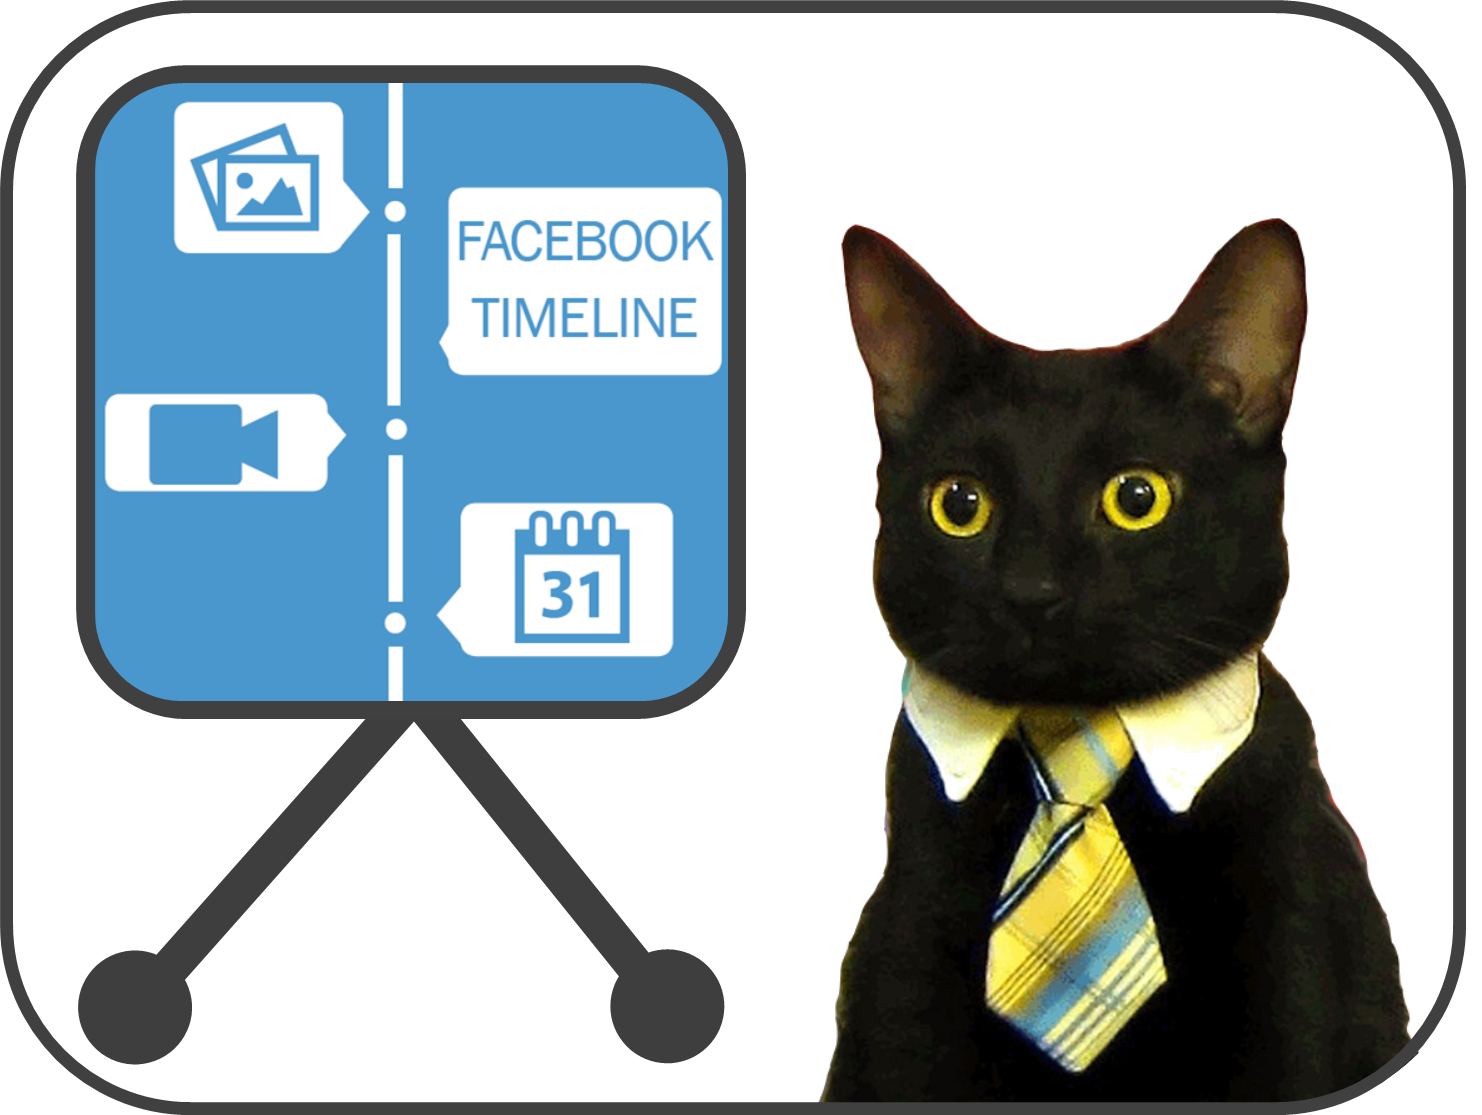 Facebook for business how to create business pages with timeline